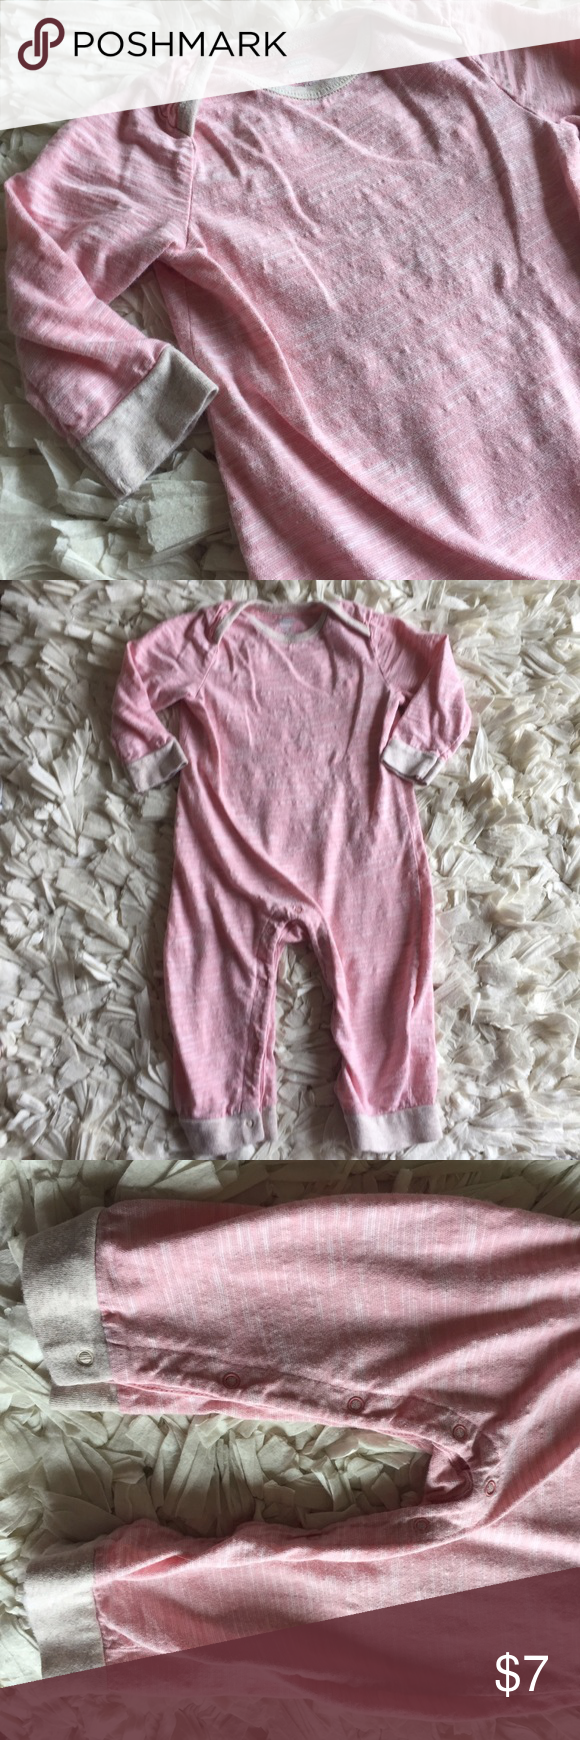 Light pink bodysuit Super cute light pink bodysuit with white space dye design. Collar and cuffs are a light tan. I loved this little suit. It's perfect to lounge around the house in but cute enough to run to the grocery store in and it's so easy to throw on! Button snaps on legs. Old Navy One Pieces Bodysuits